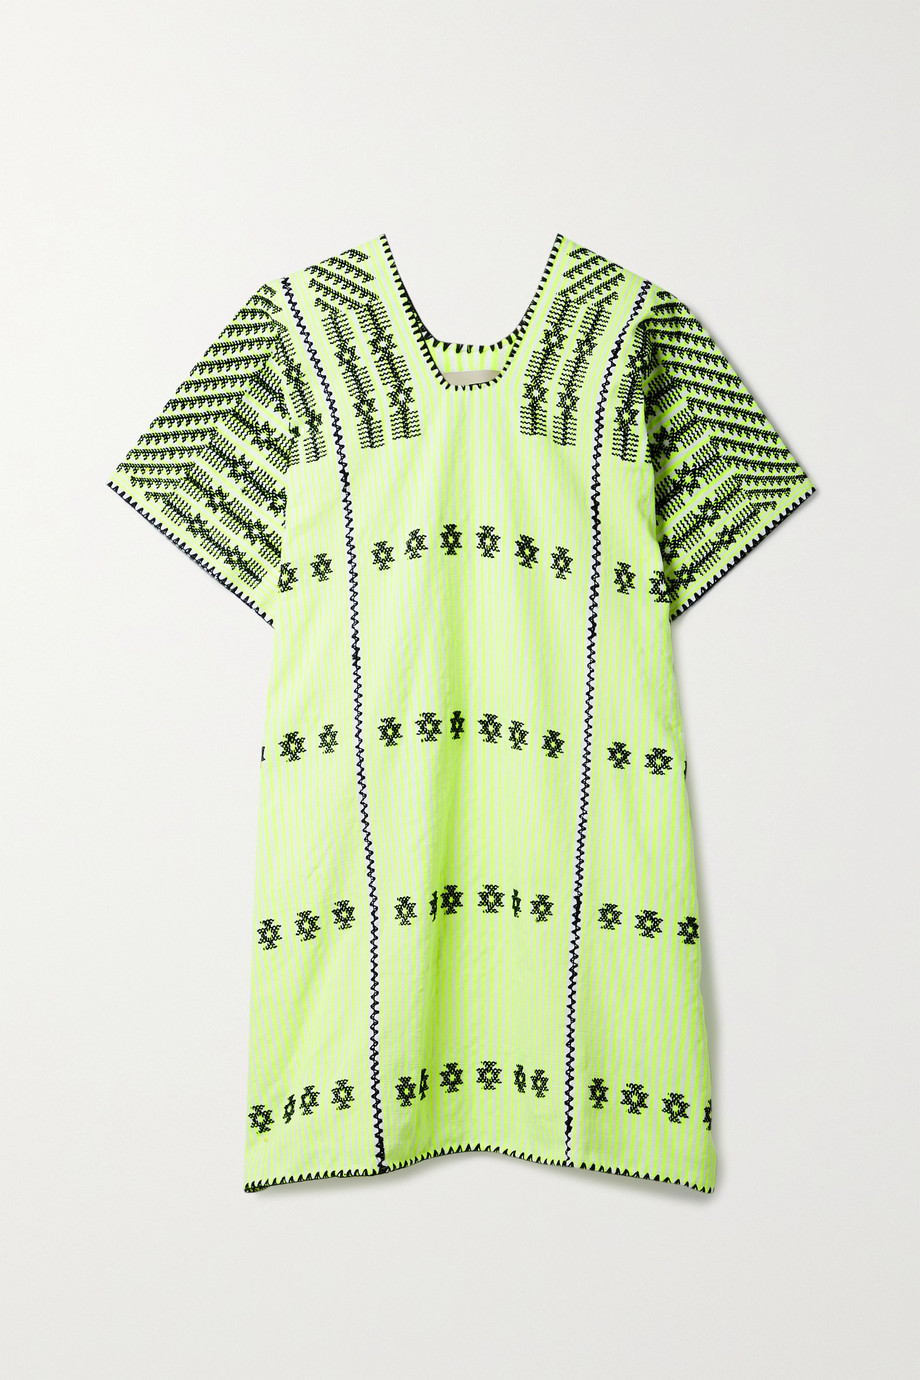 Pippa Holt + NET SUSTAIN embroidered striped neon cotton huipil